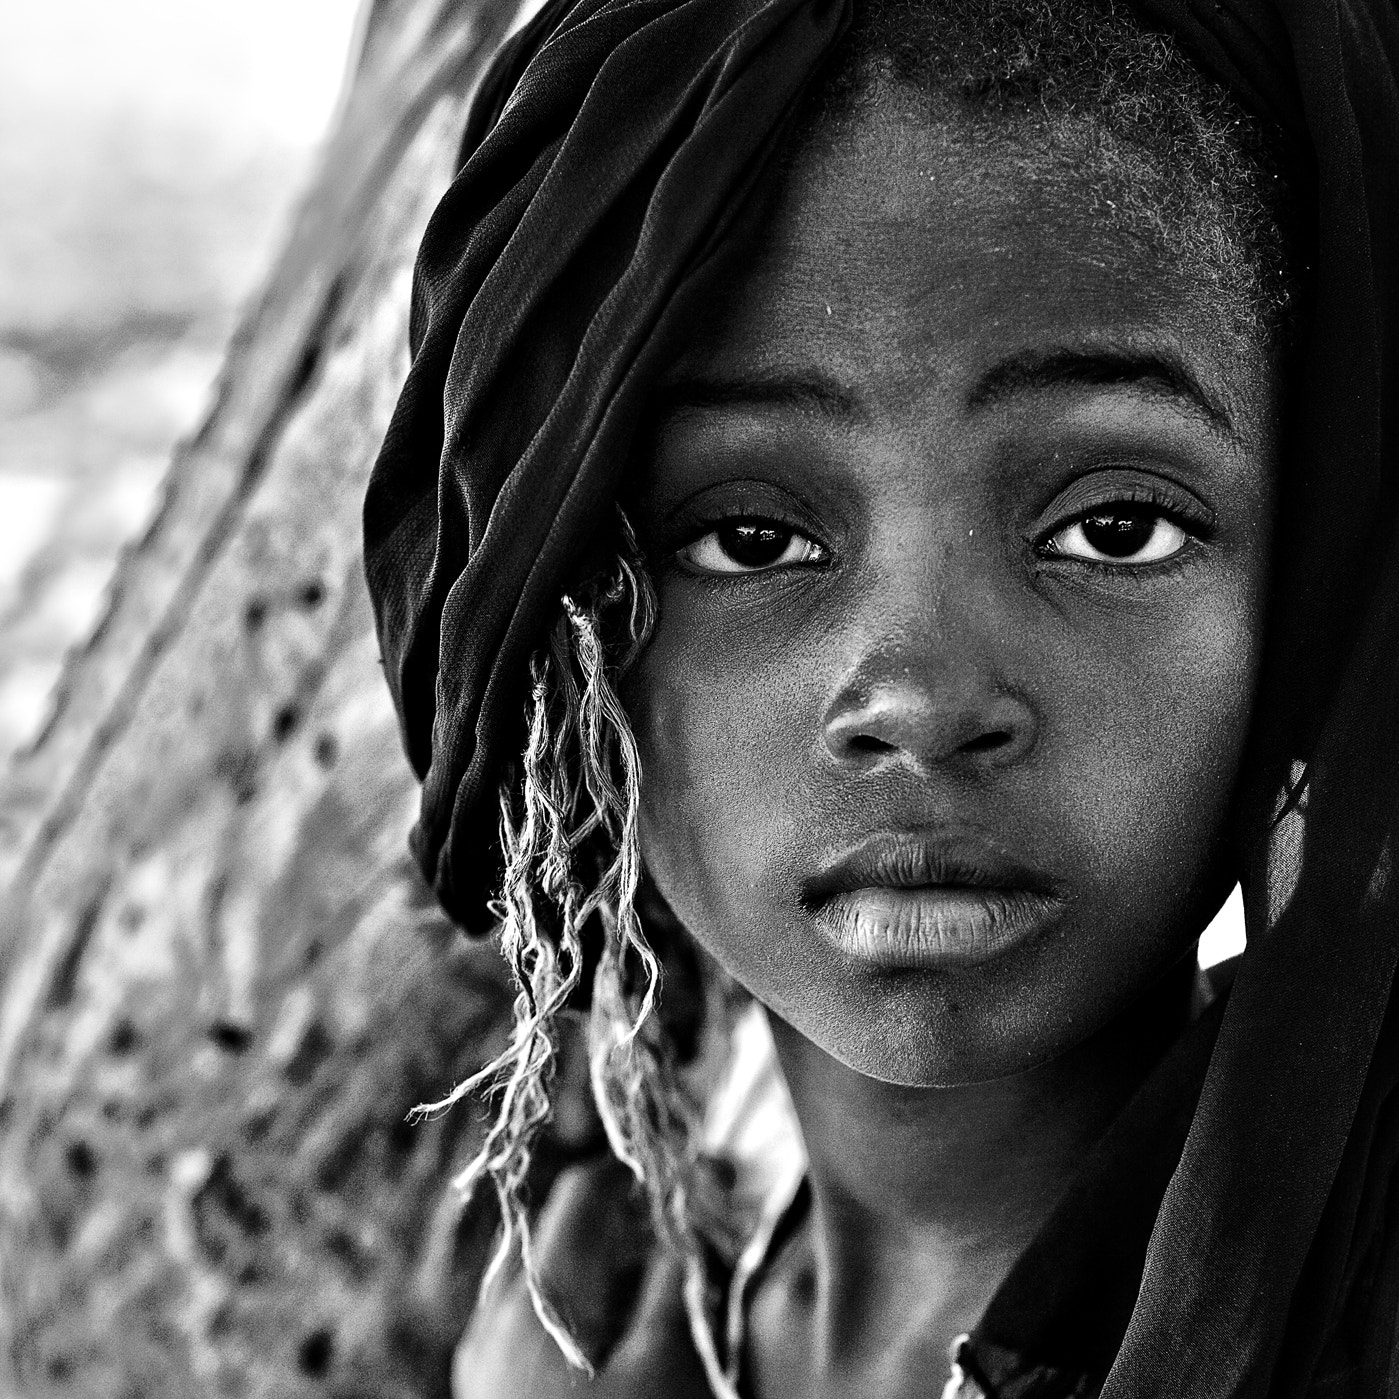 Photograph Gambiana by María Nieto on 500px